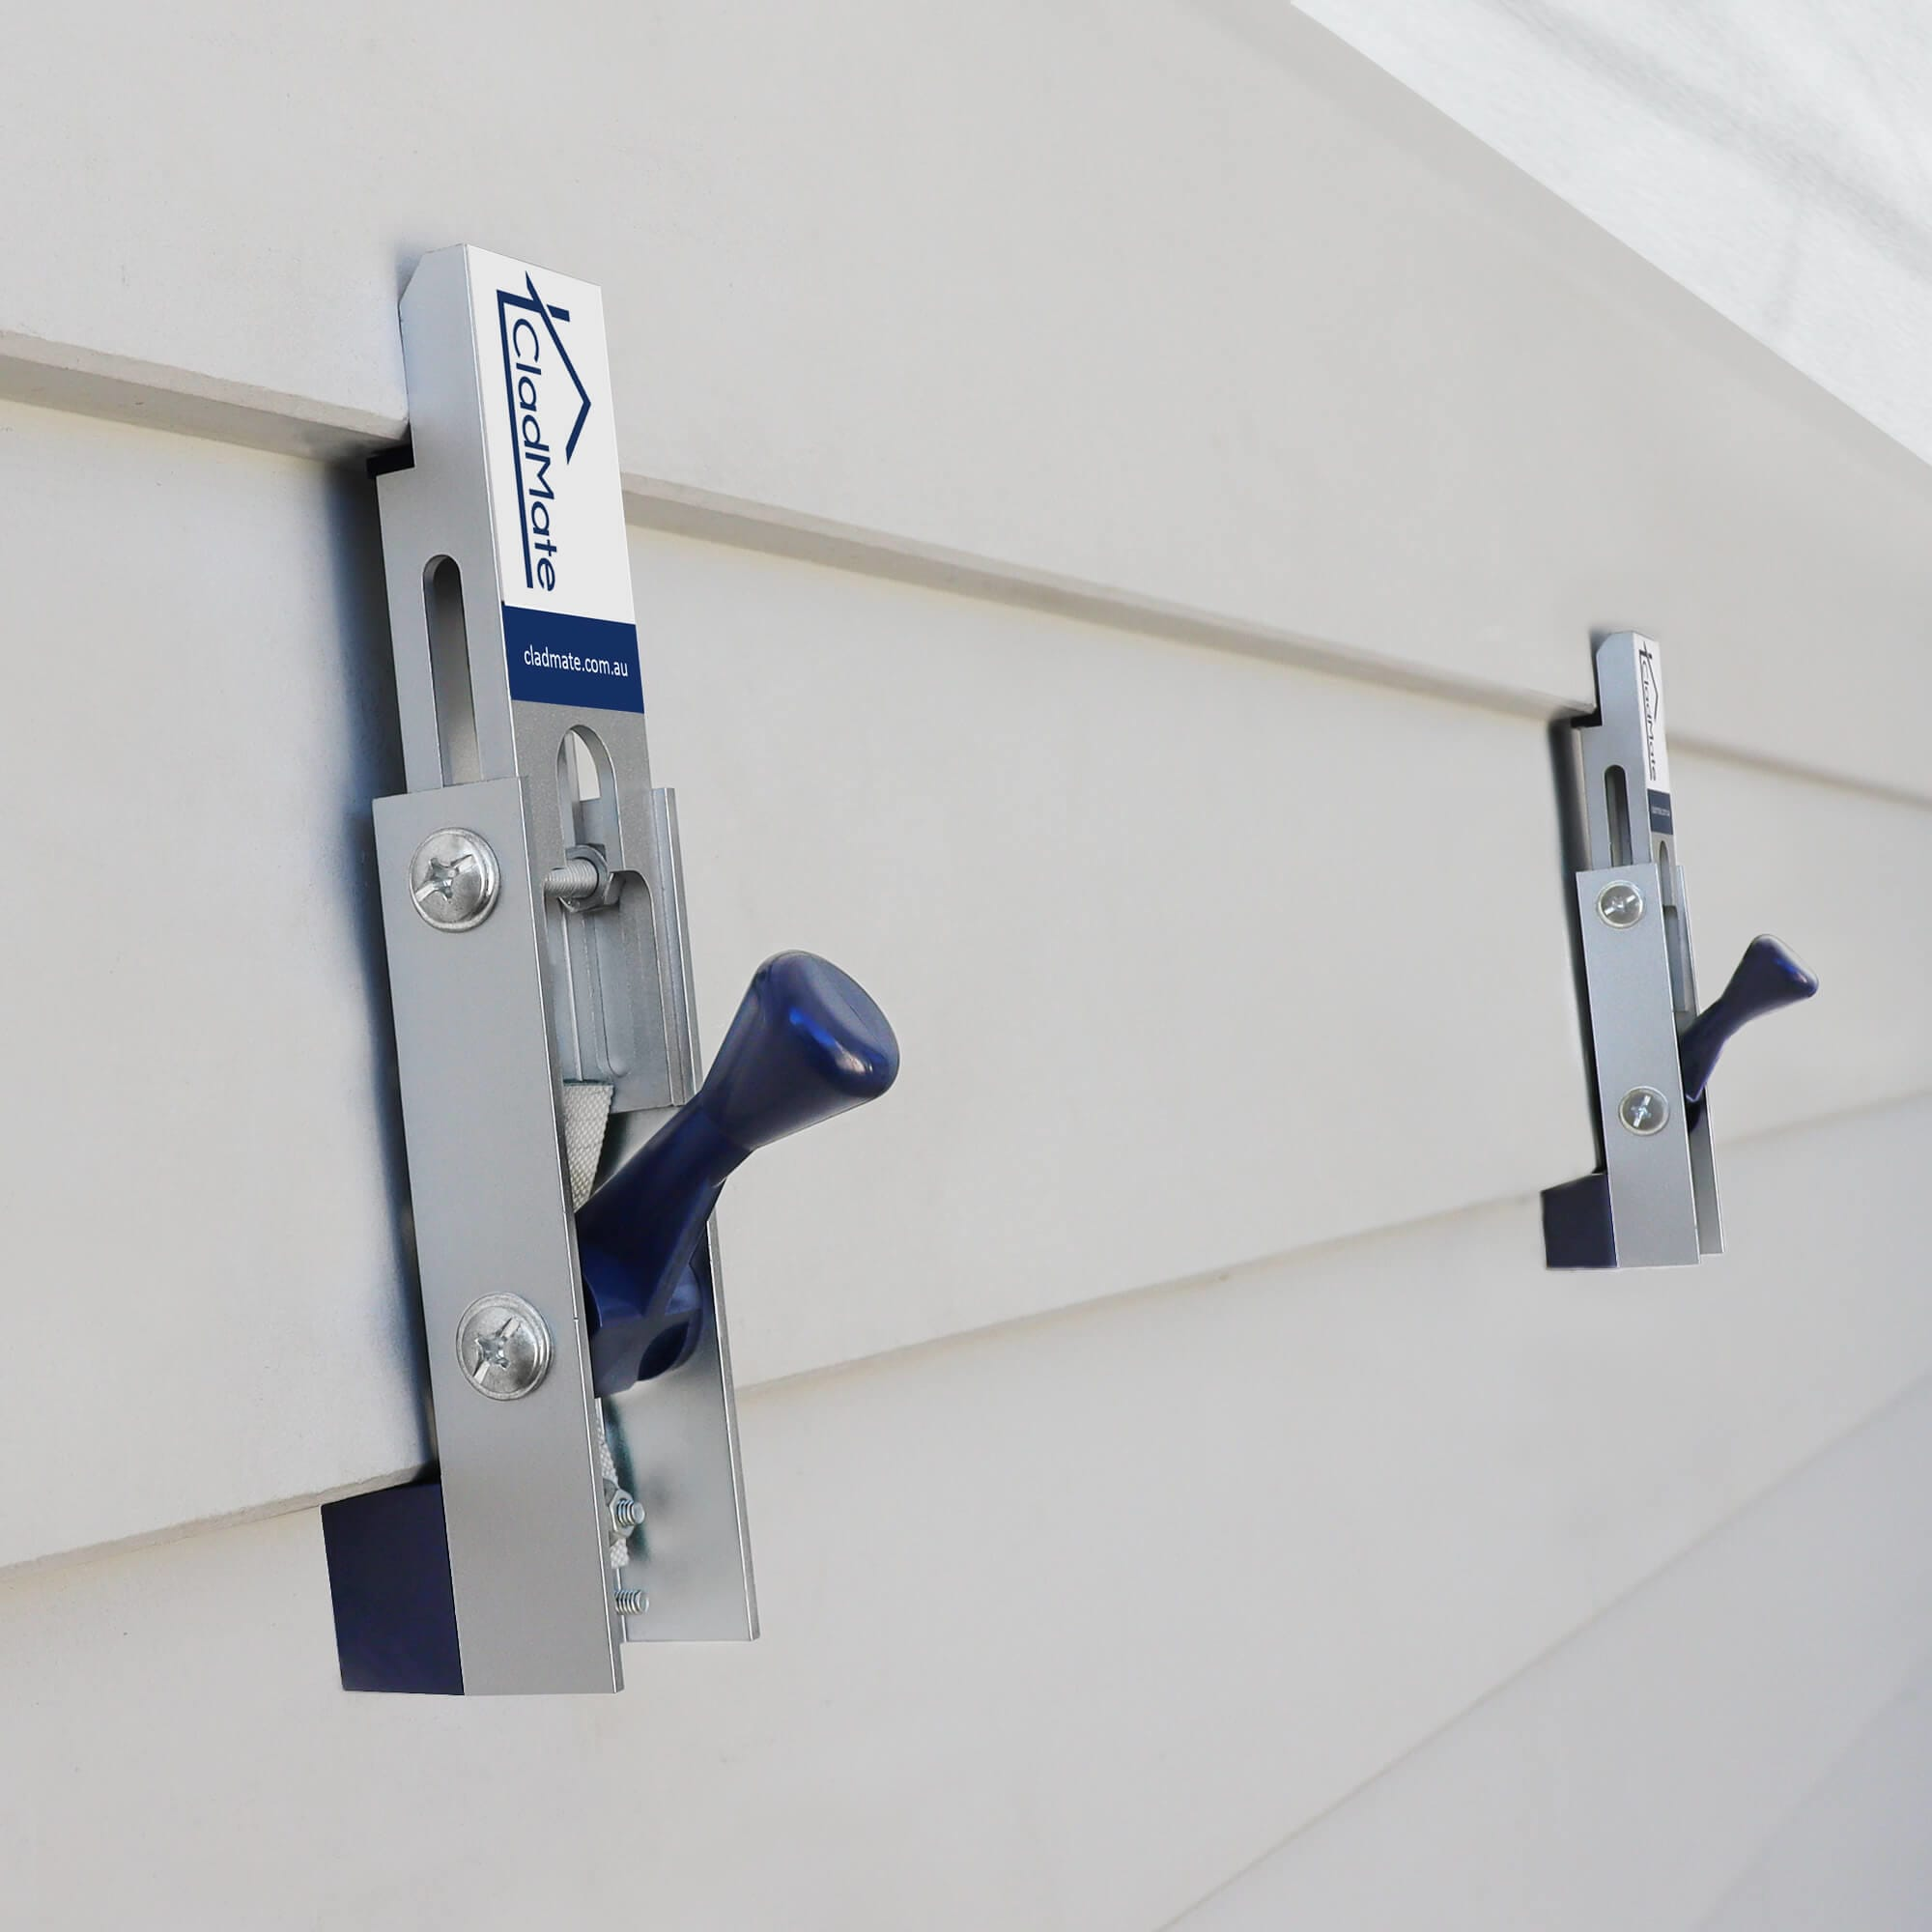 CladMate WeatherBoard Clamps Holding Scyon Linea